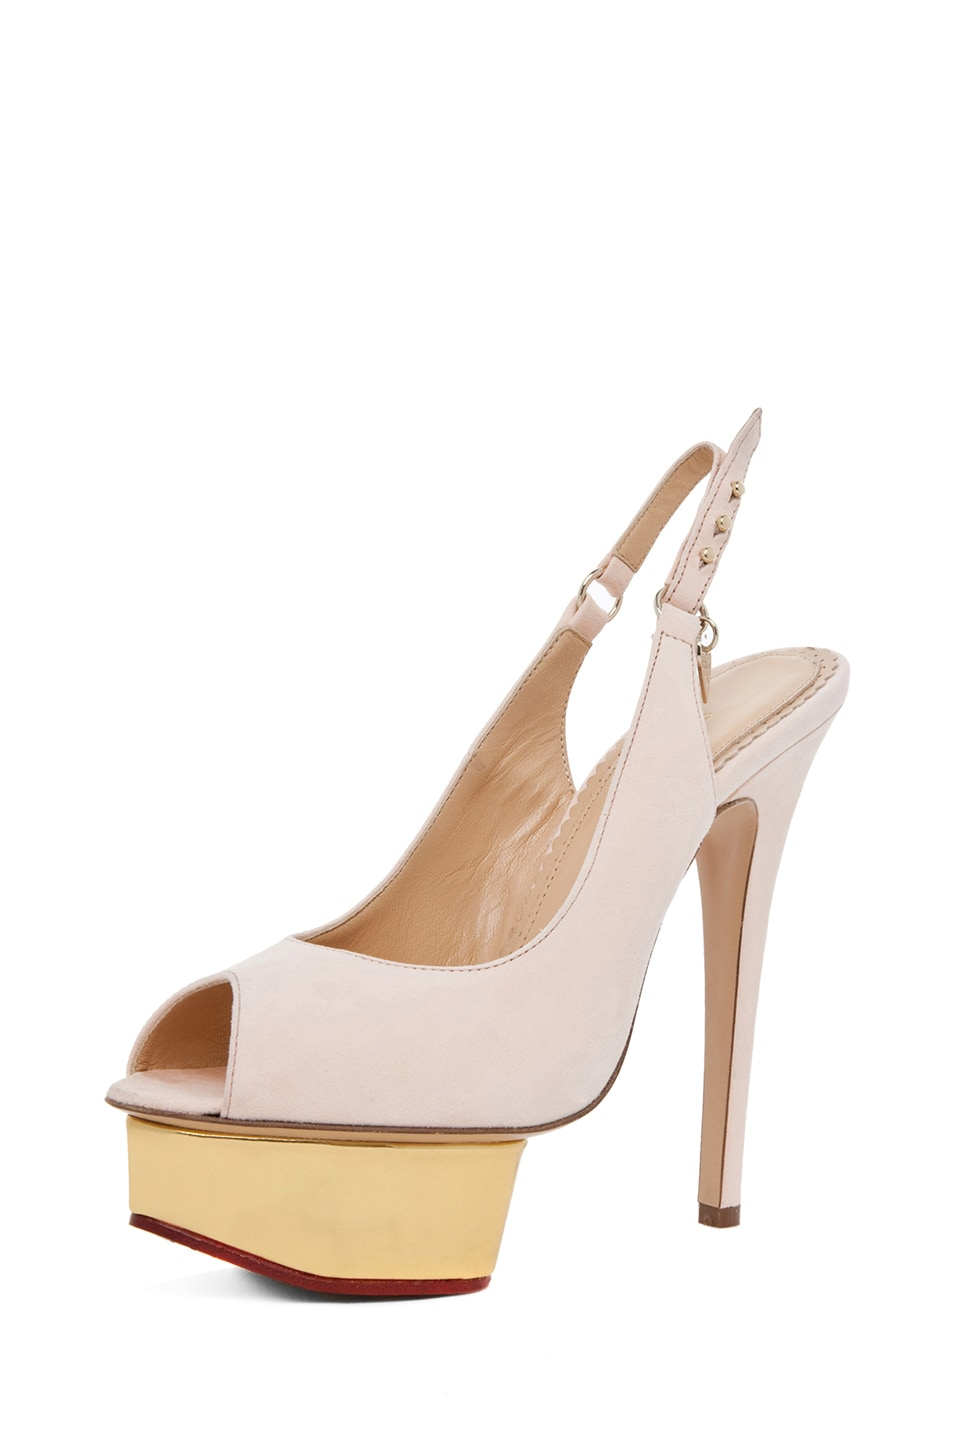 Image 2 of Charlotte Olympia Bon Bon Suede Sling Back Heels in Cipria